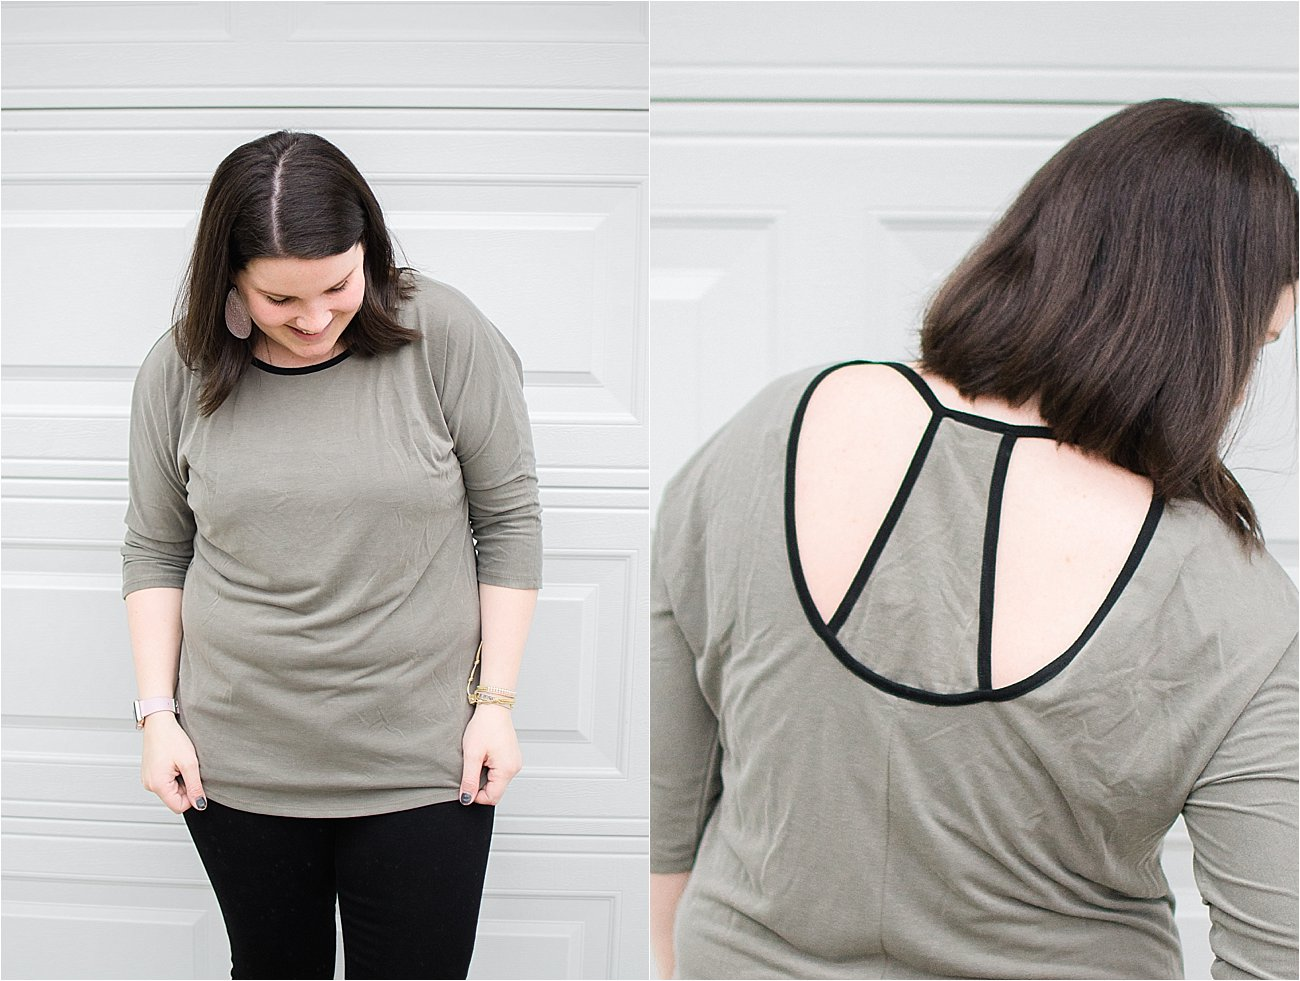 Papermoon Harni Cutout Detail Knit Top - Size XL - $48